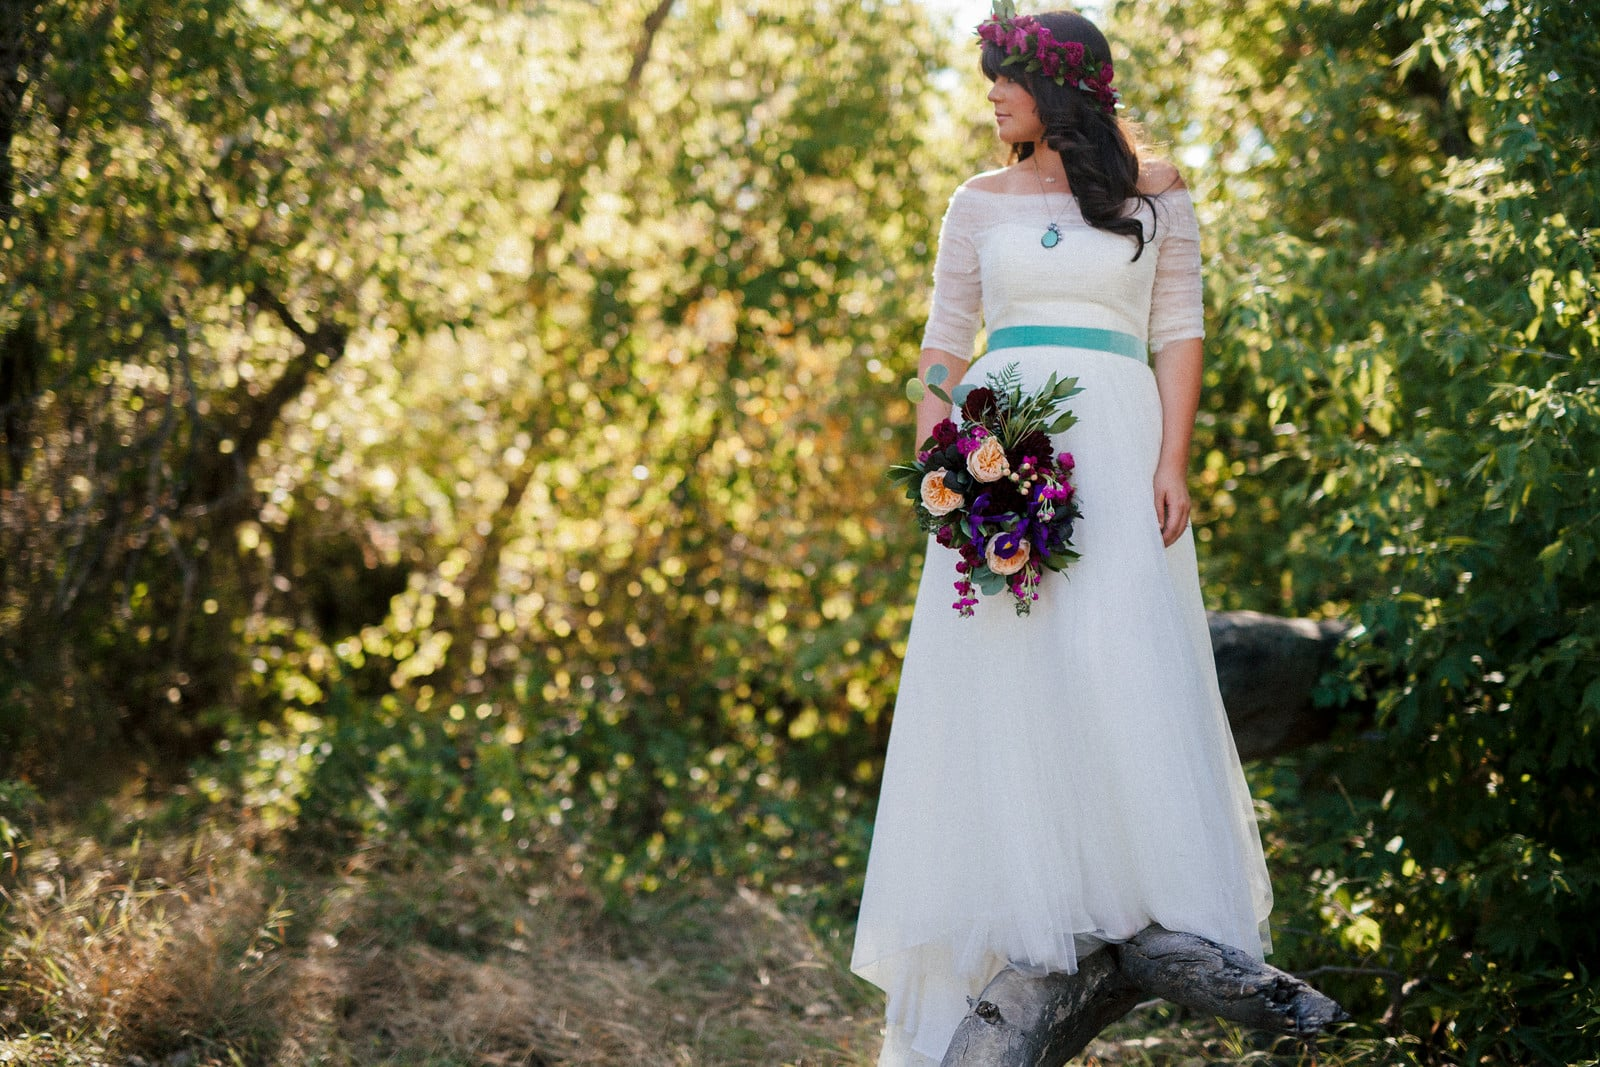 Flowers by Lace and Lilies, jewel tone wedding